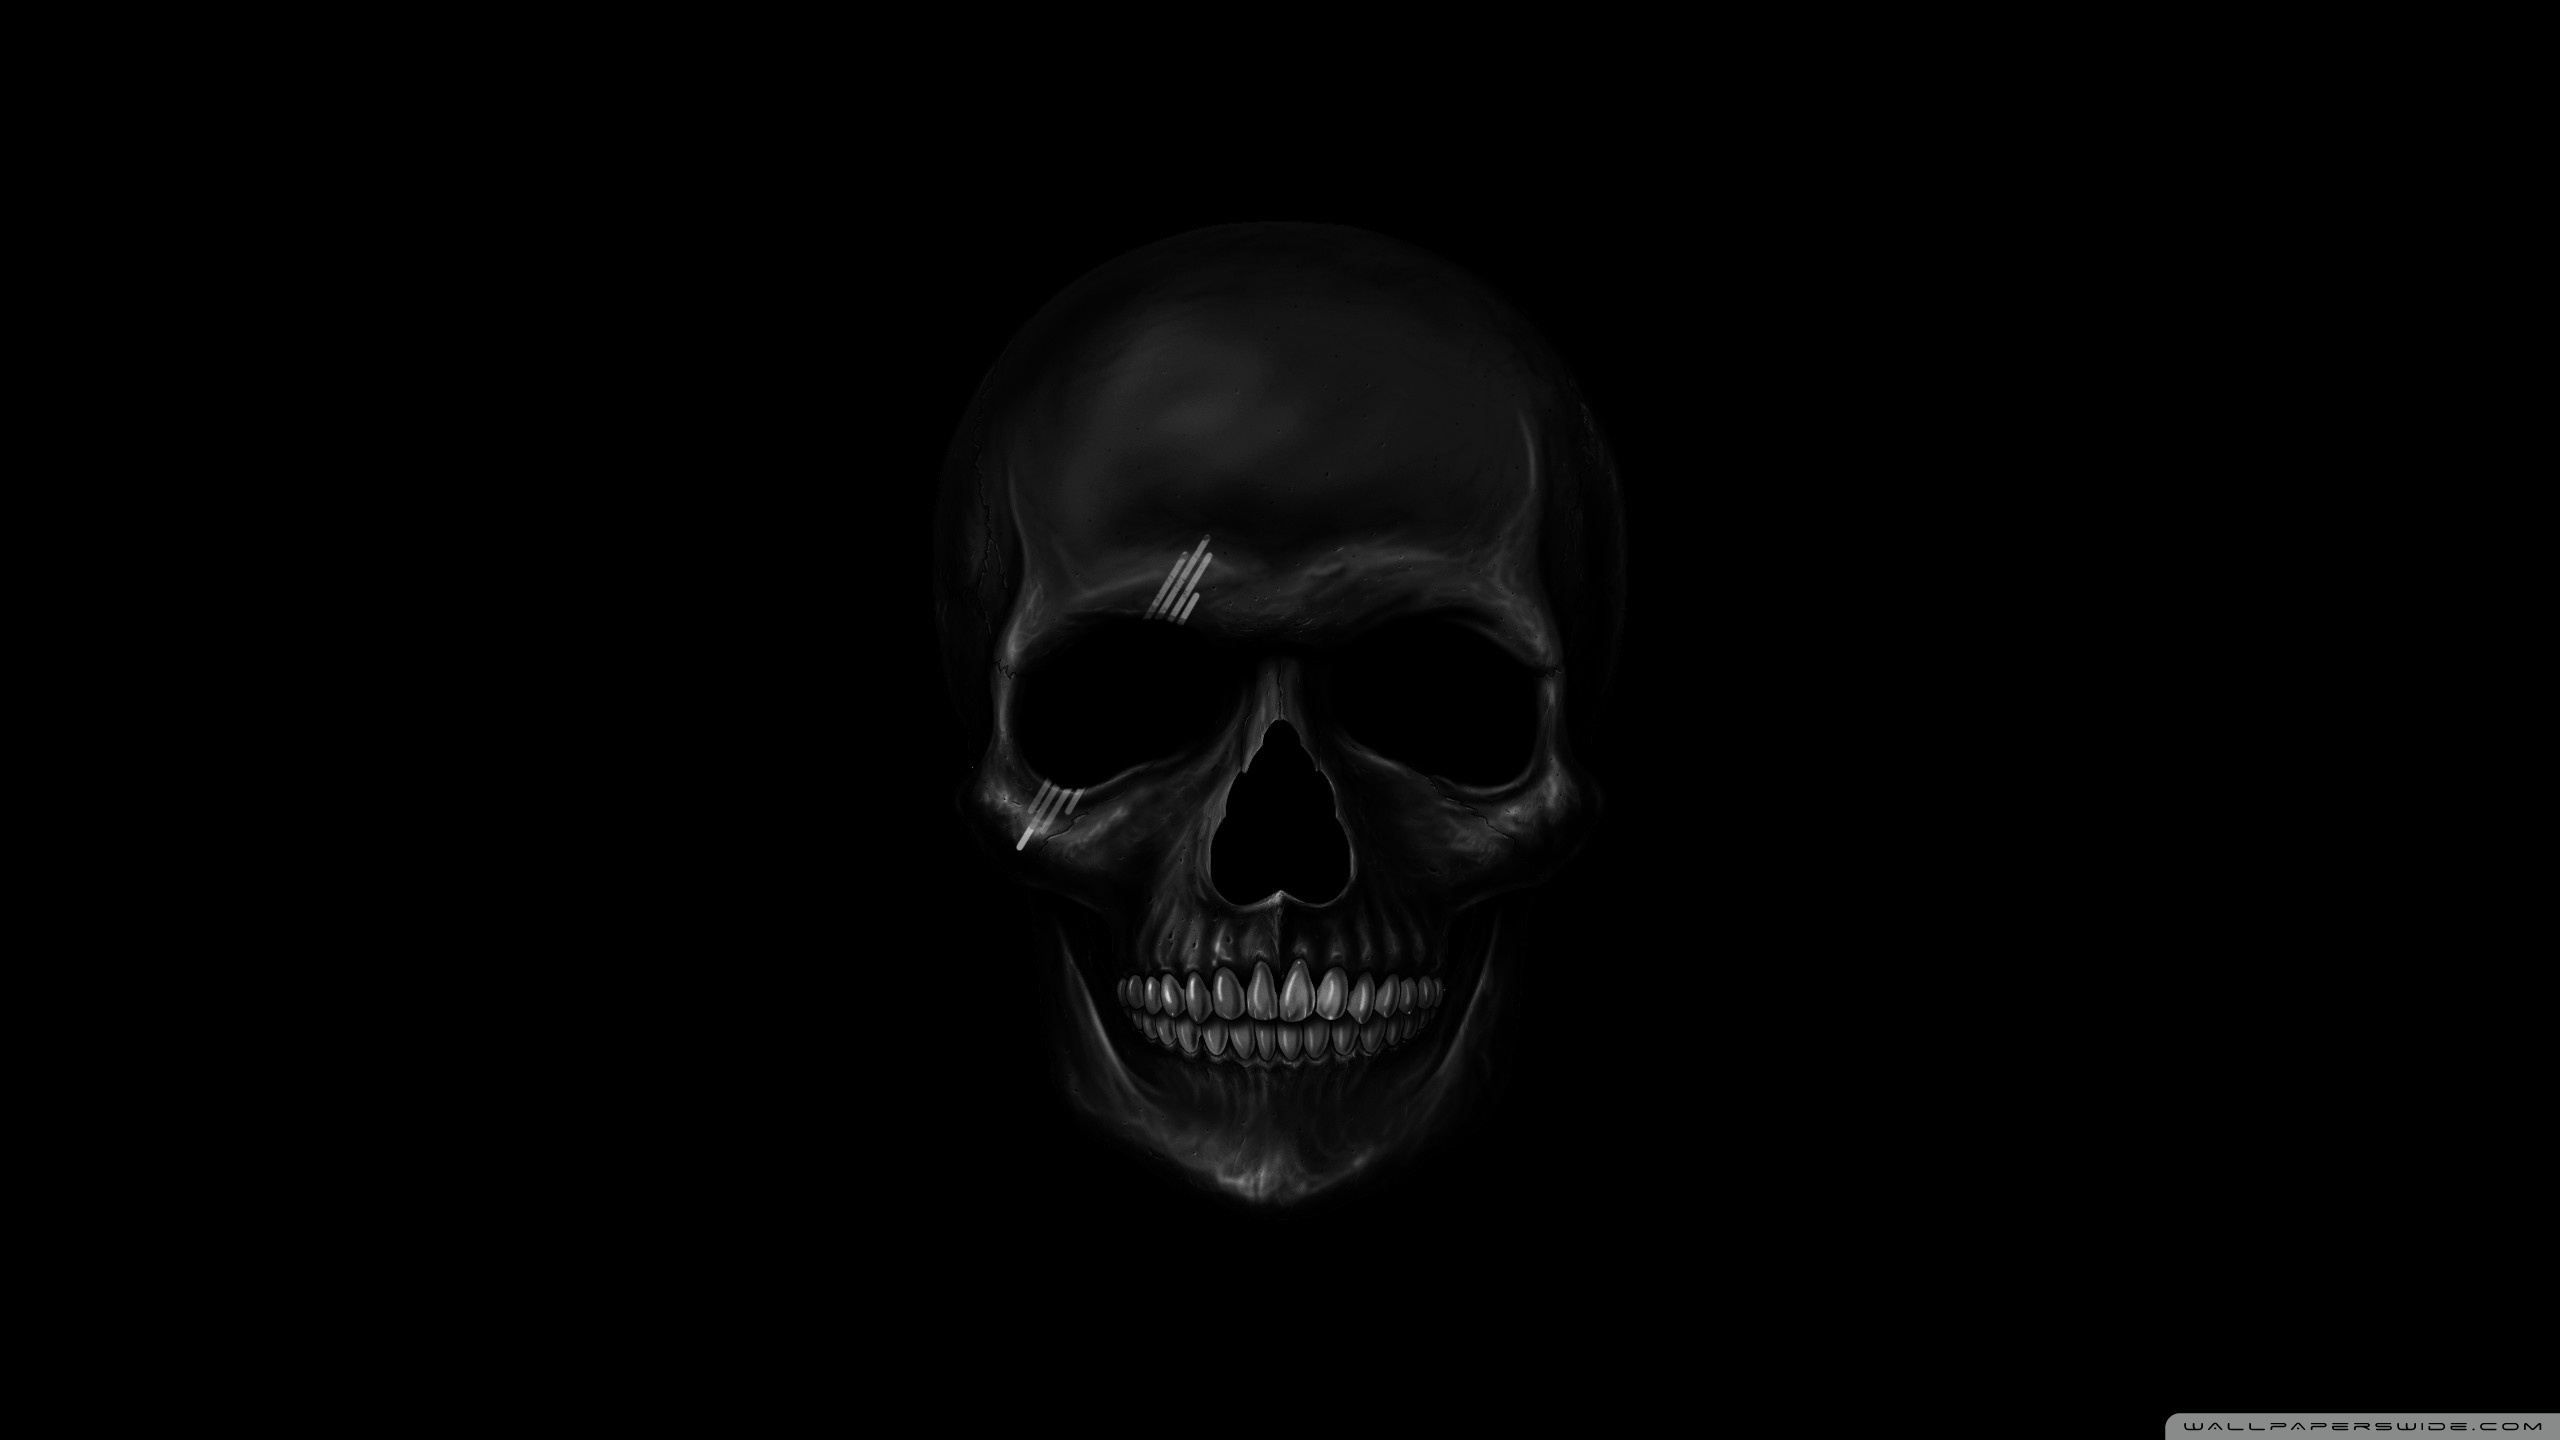 Skull Wallpaper HD